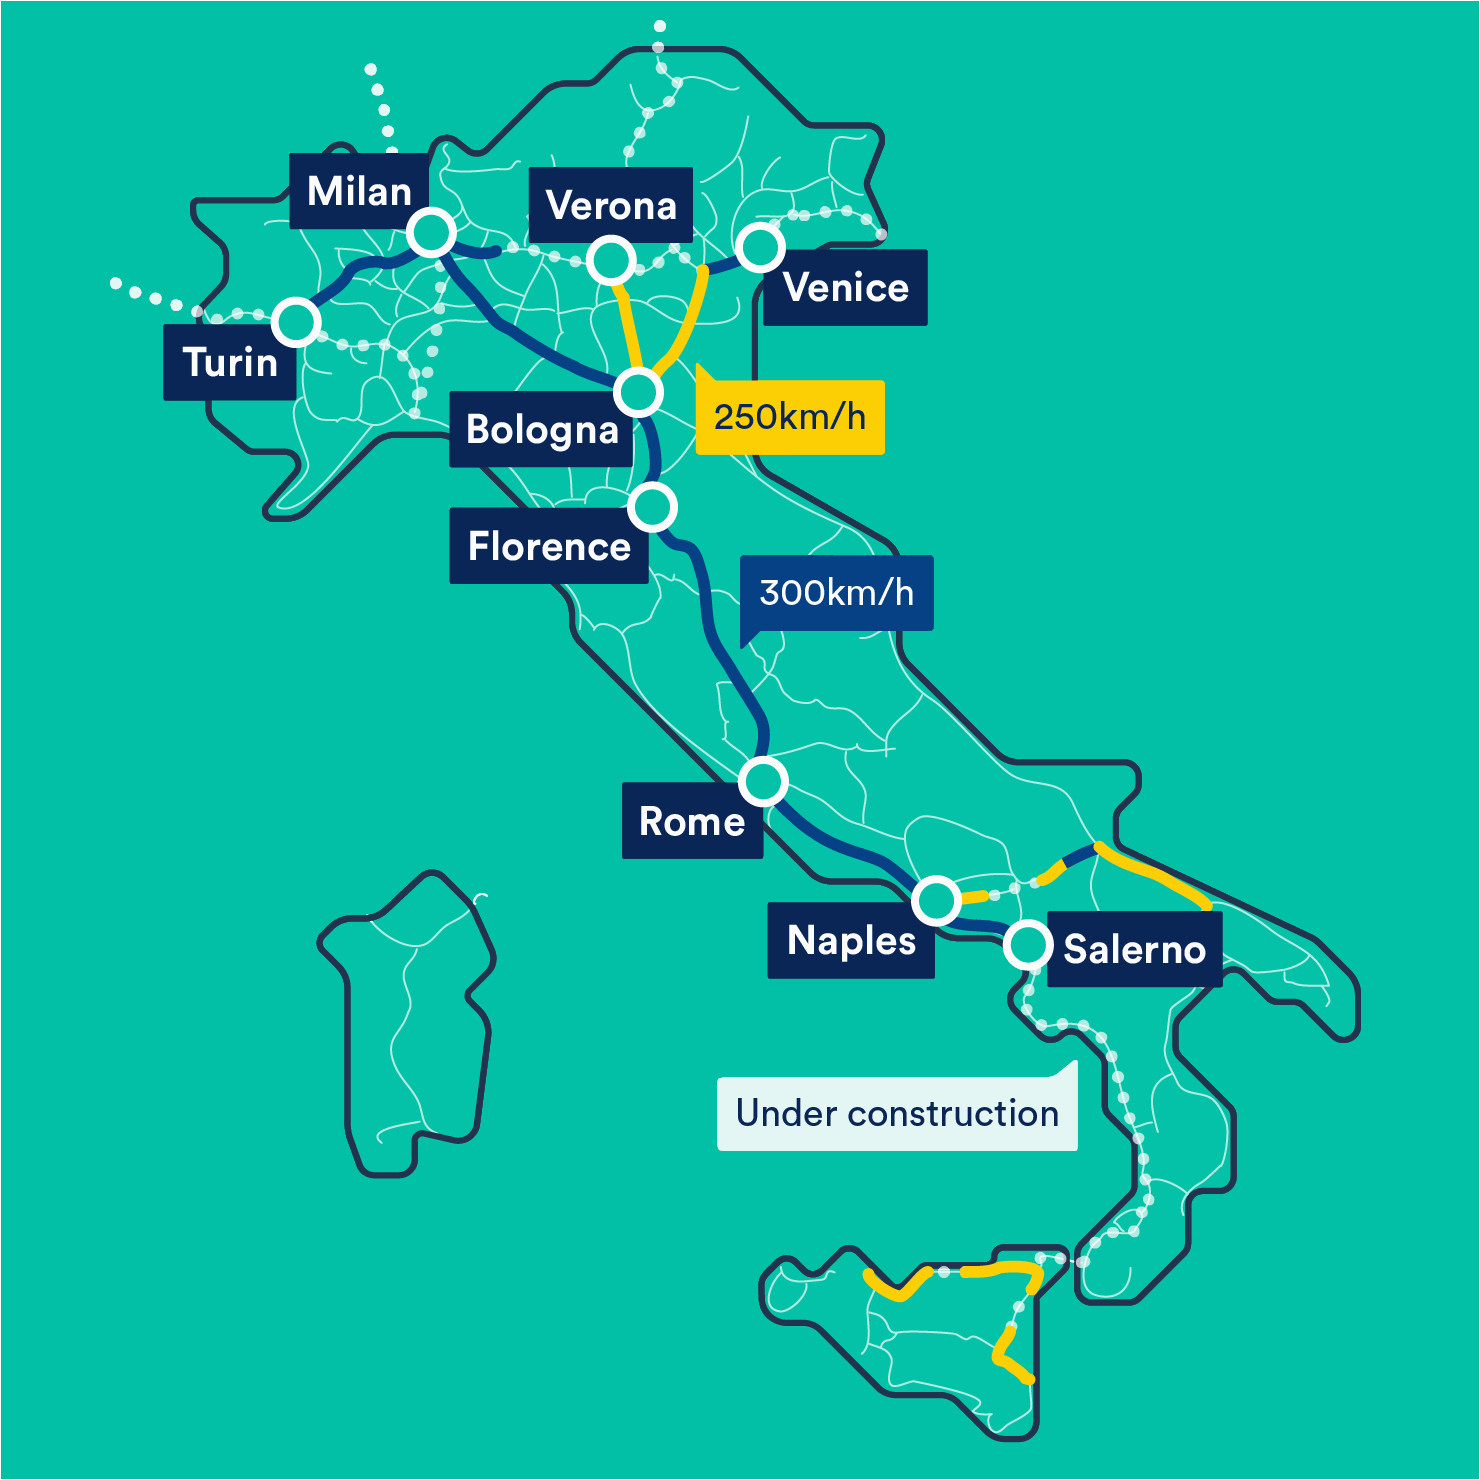 Map Of Trains In Italy Trenitalia Map with Train Descriptions and Links to Purchasing